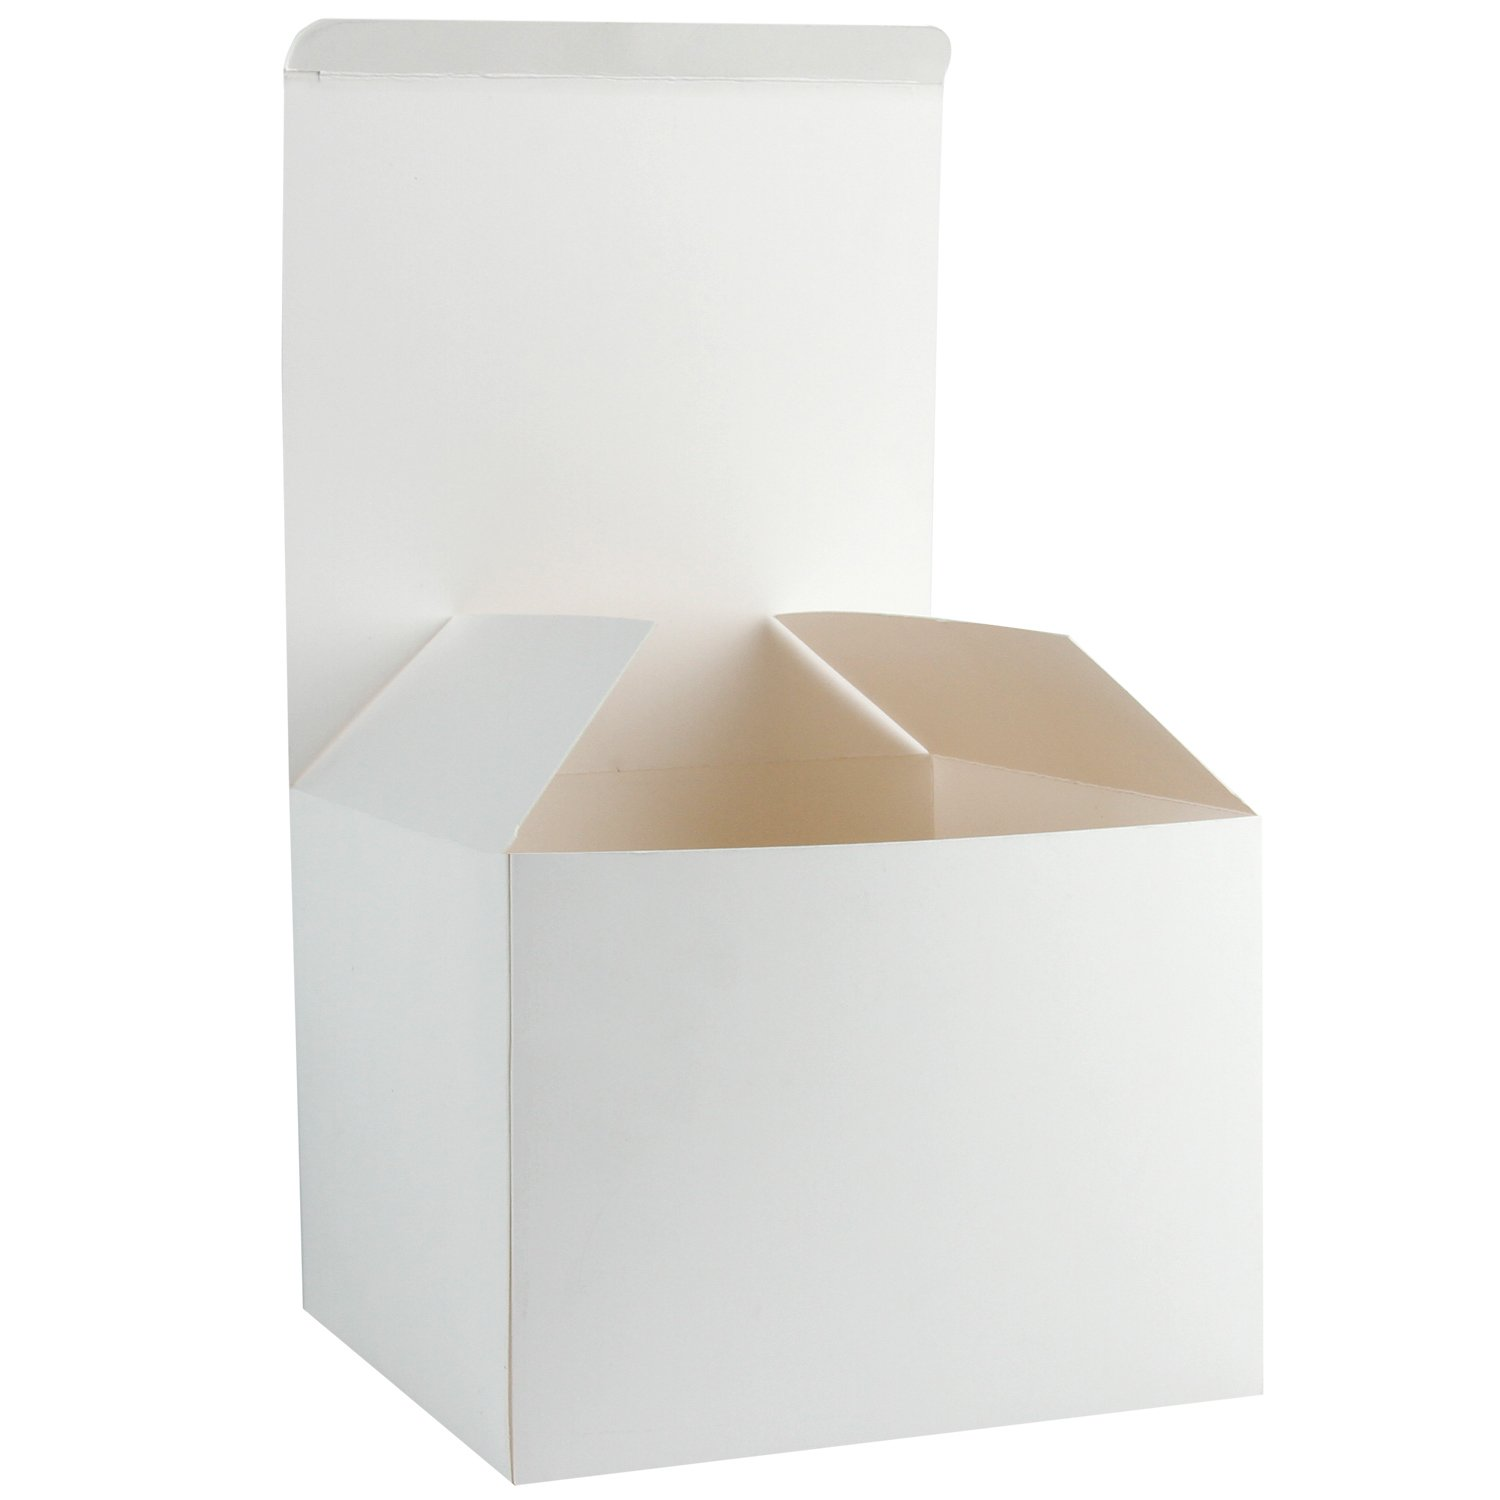 """RUSPEPA Recycled Cardboard Gift Boxes - Decorative Medium Gift Box with Lids for Gifts and Cupcake - 8""""X8""""X6"""" - 10 Pack-White"""